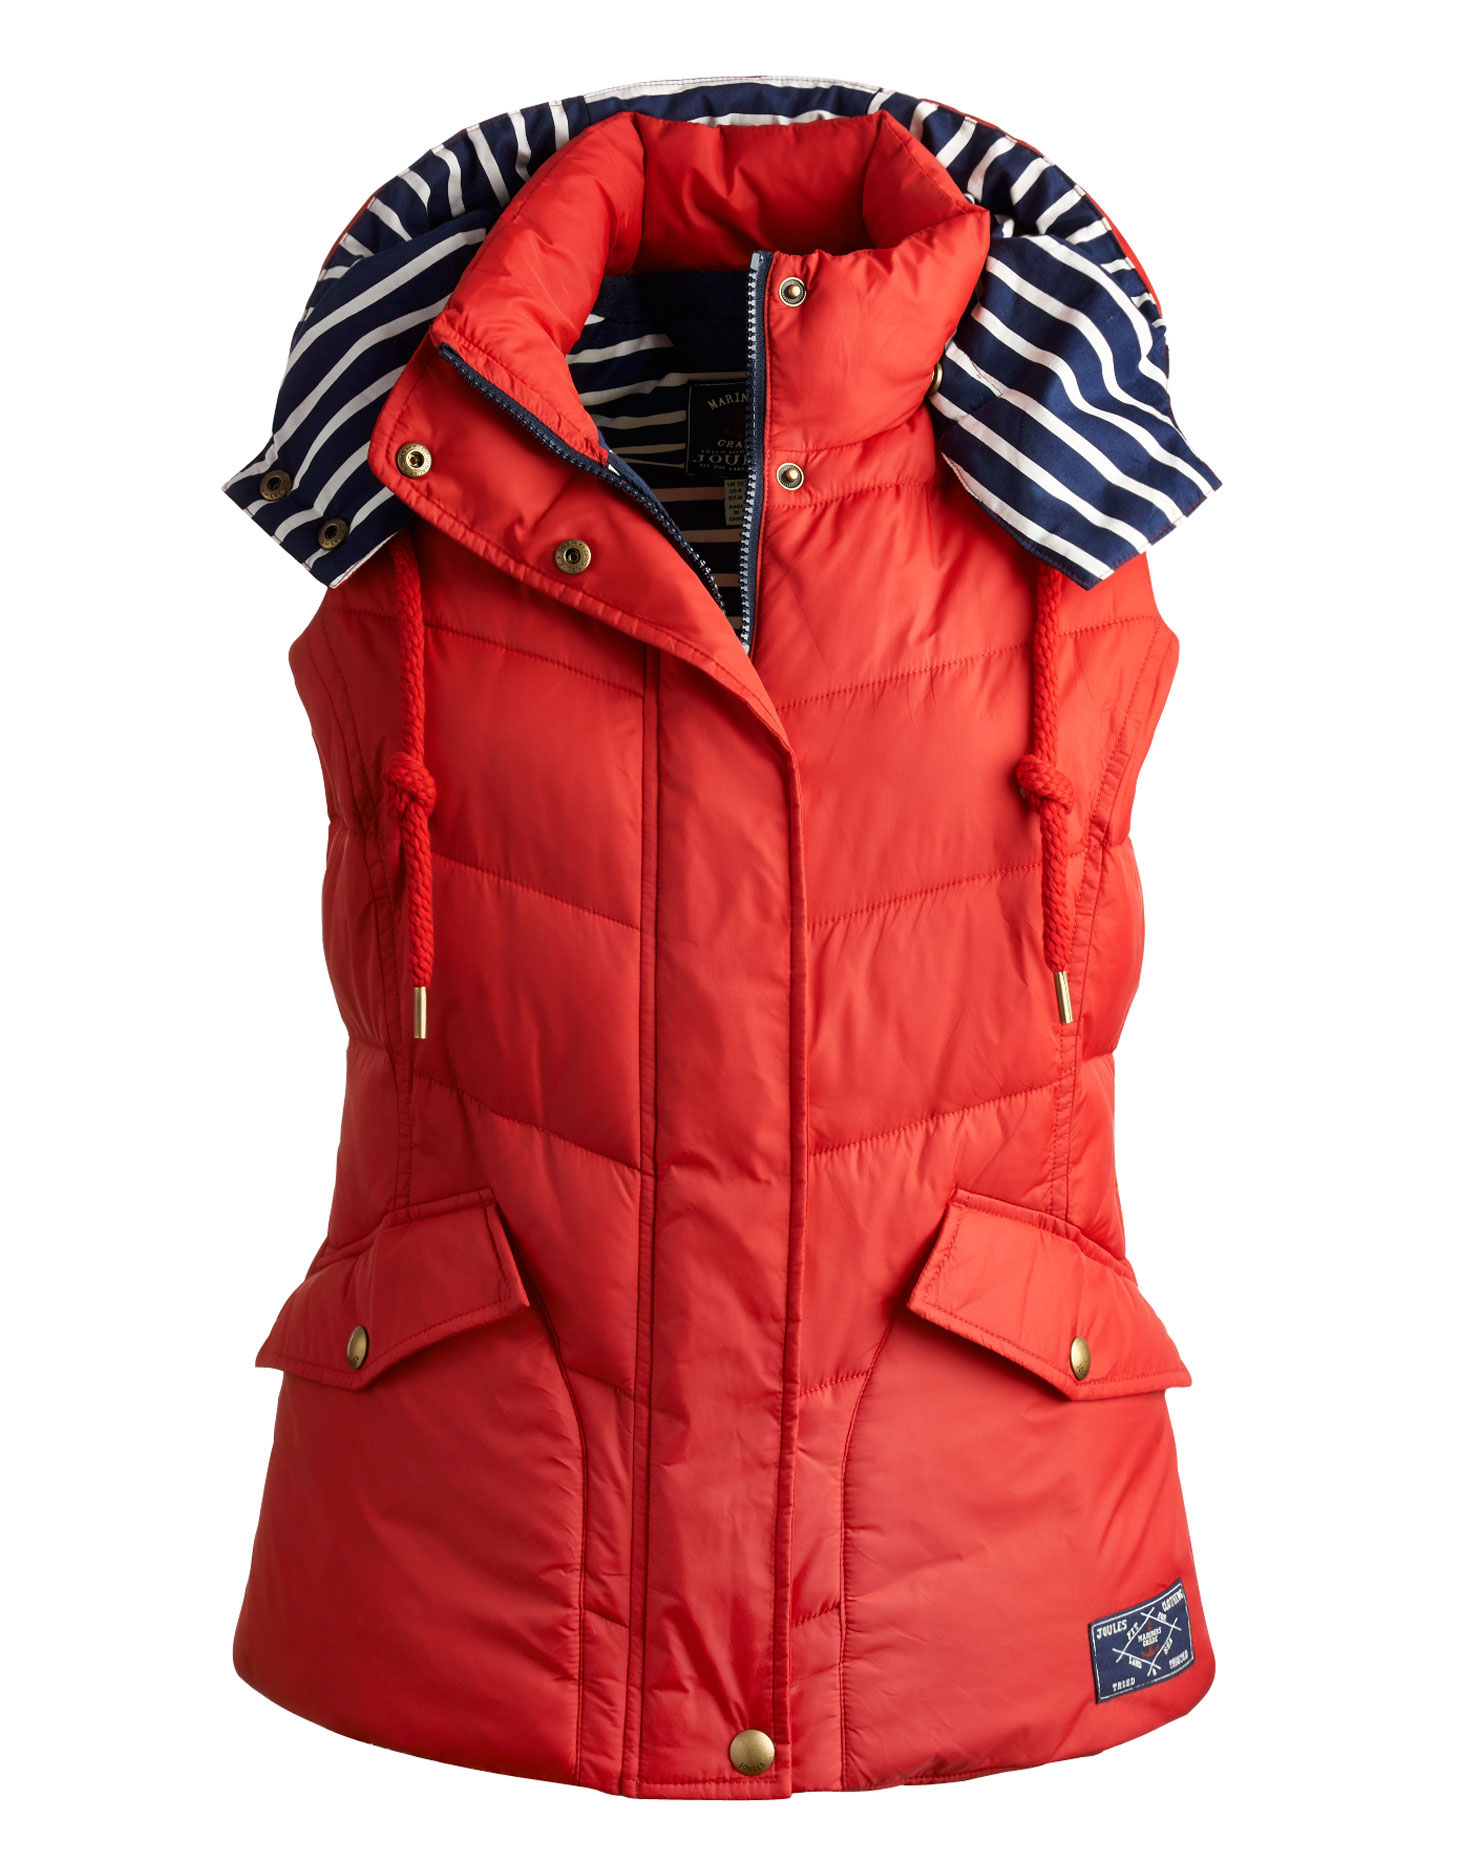 Winter Vests – Why You Should Grab Some This Winter